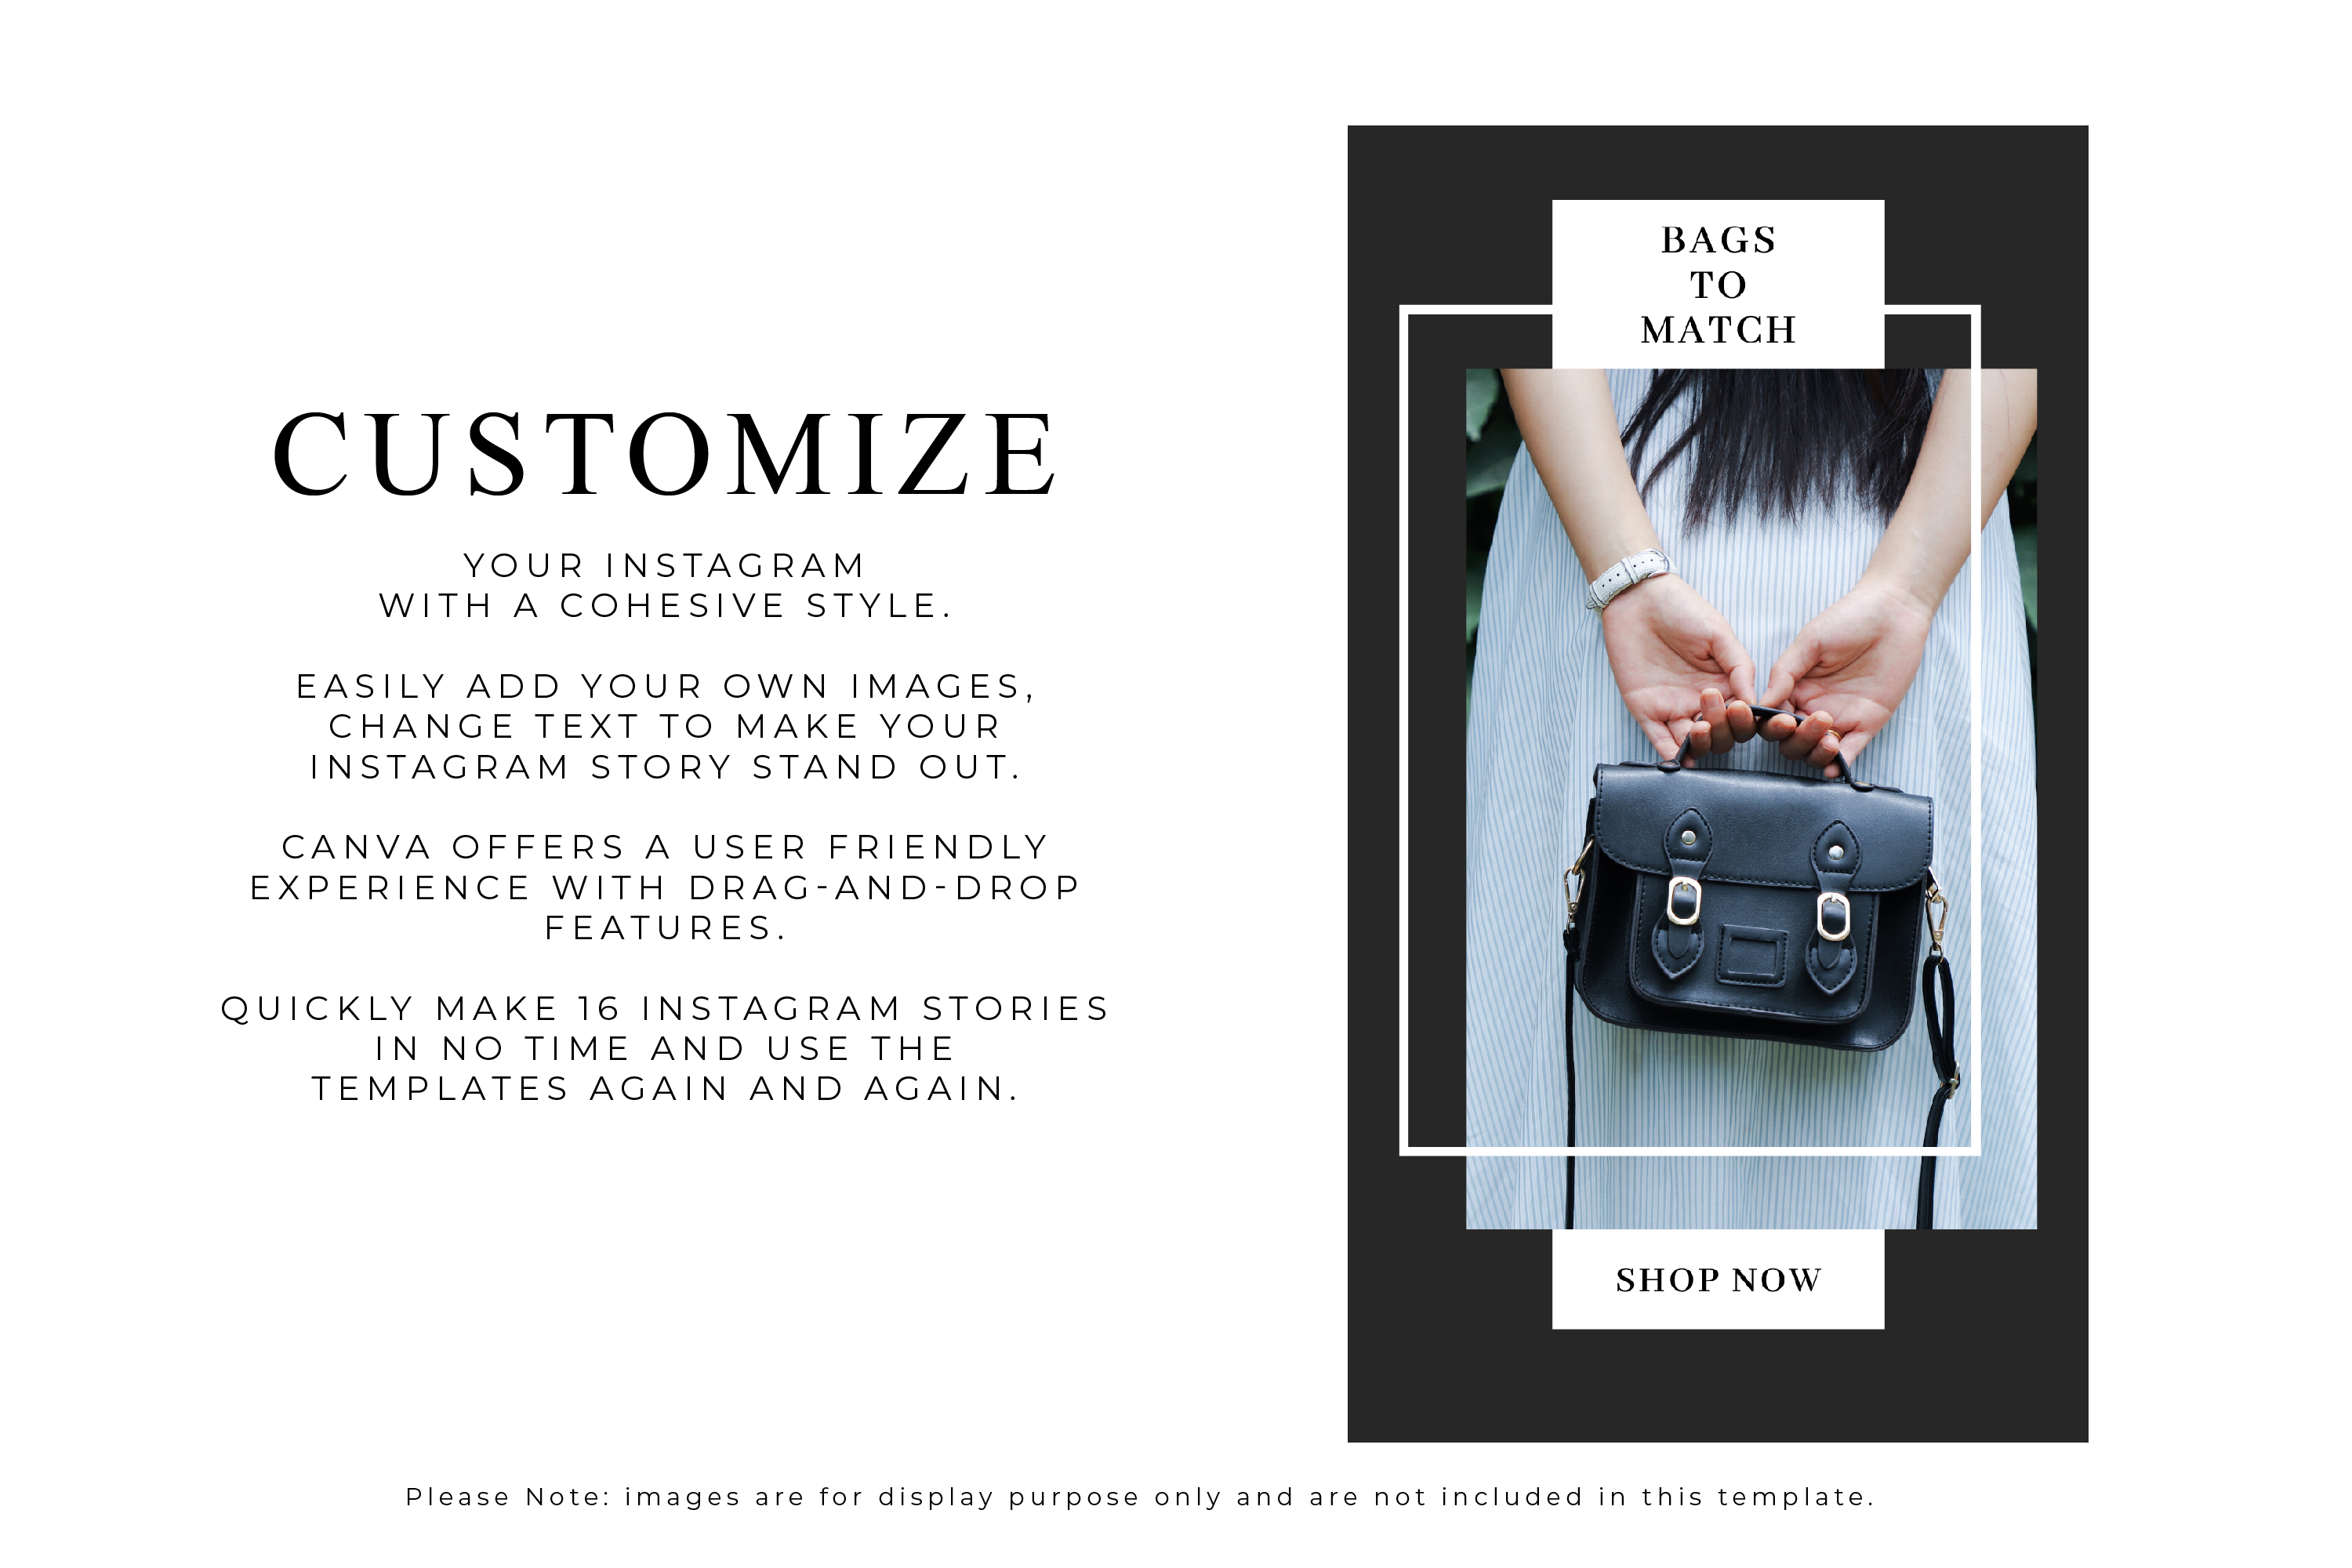 Instagram Story Canva Template - Noire example image 3